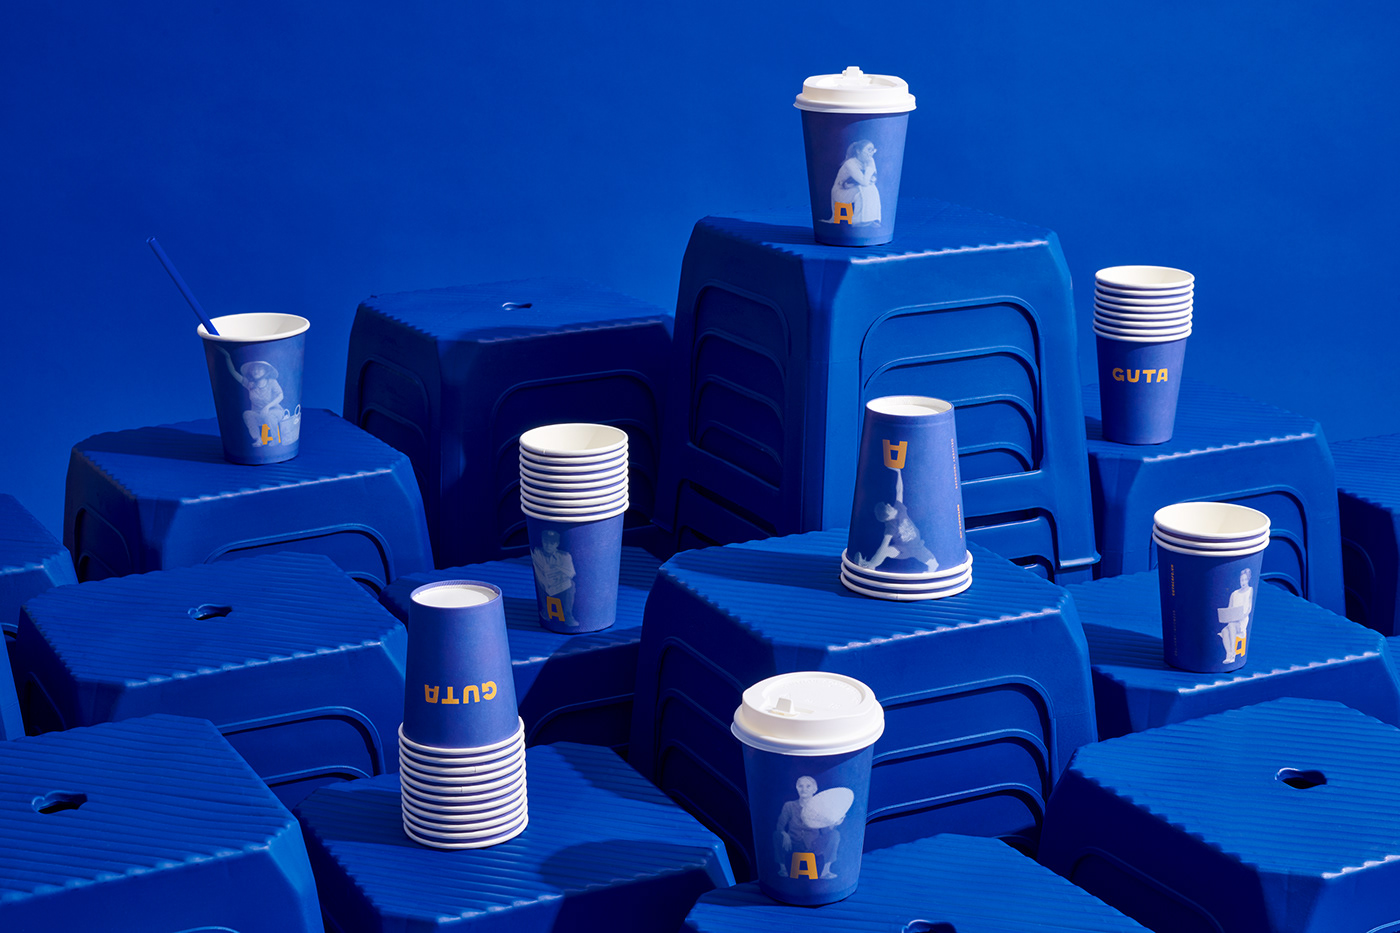 Guta Cafe, Cup Design by M — N Associates